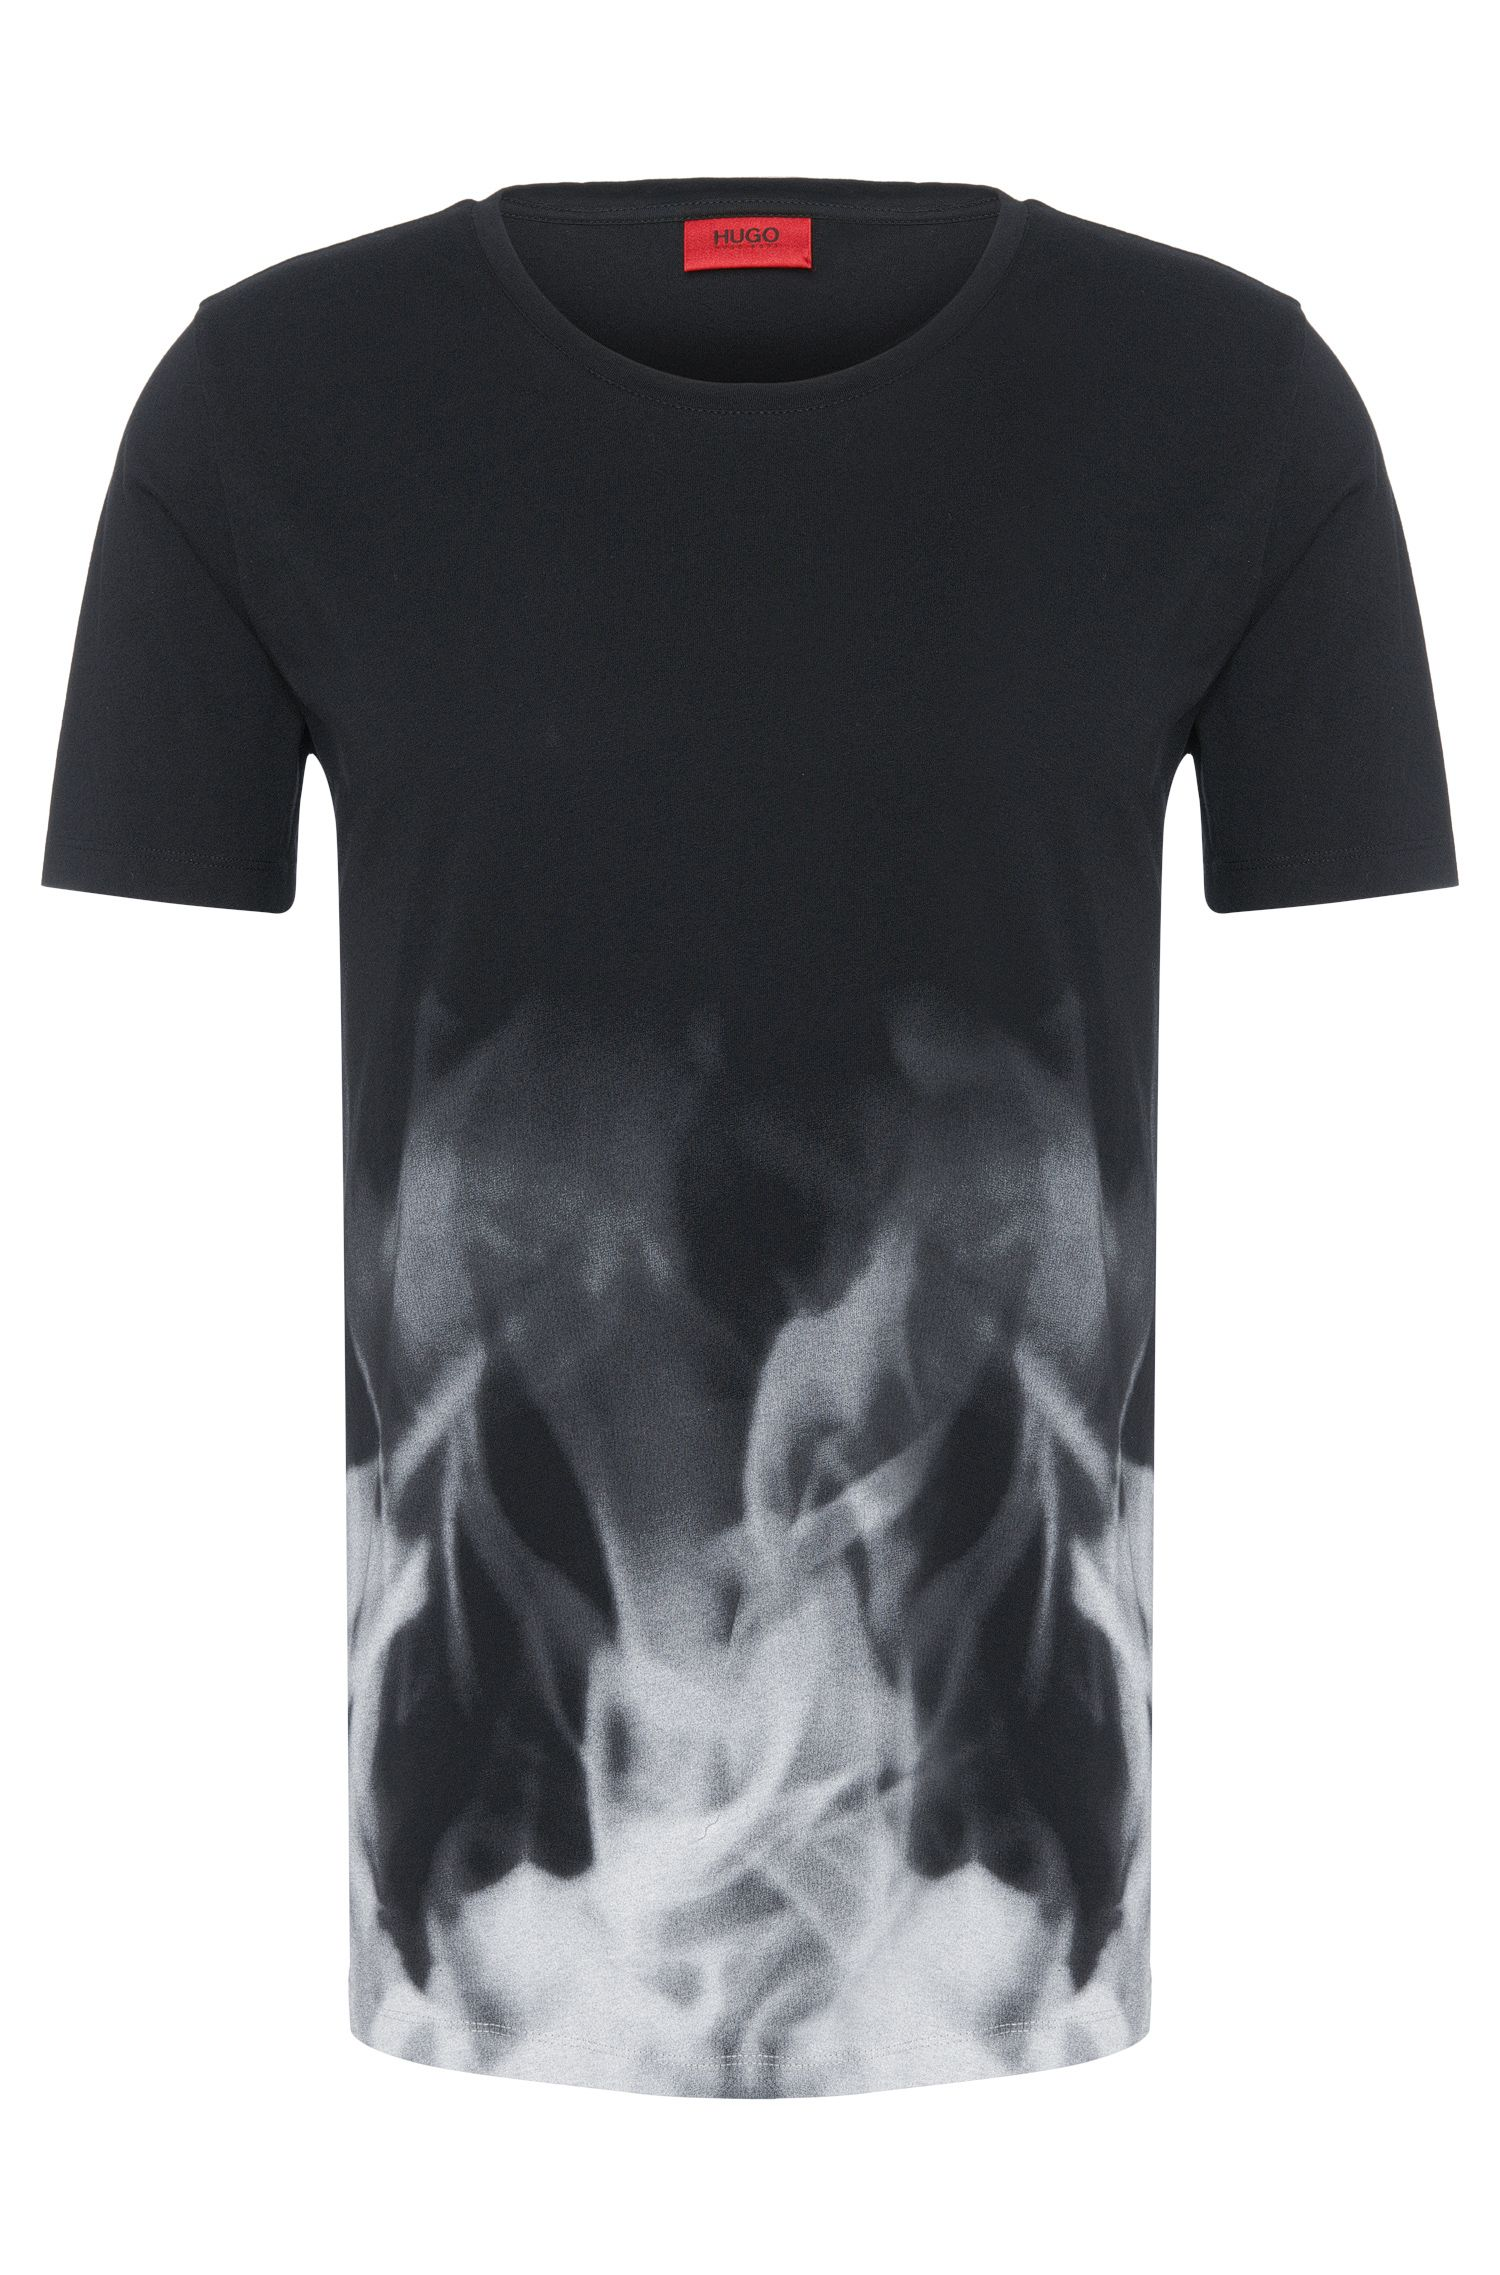 'Dmoke' | Cotton Printed T-Shirt